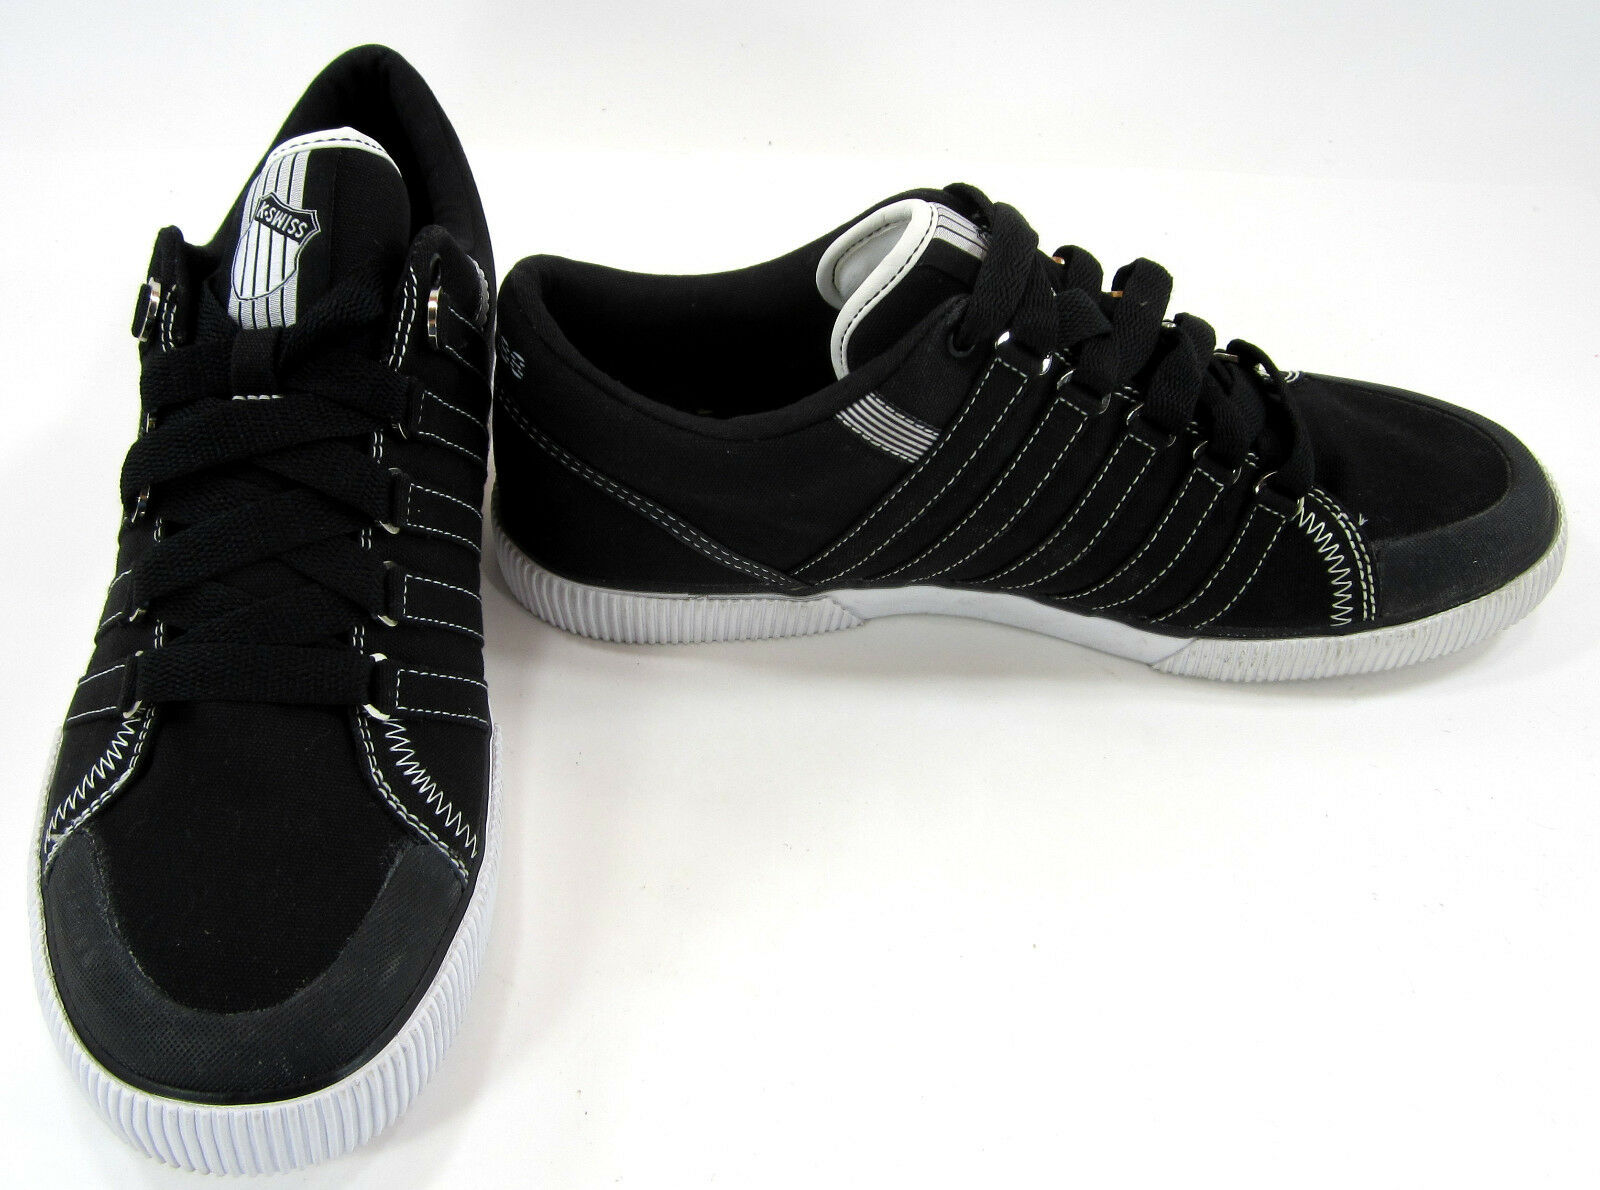 K-Swiss shoes Canvas Stitched Classic Trainers Black White Sneakers Size 11